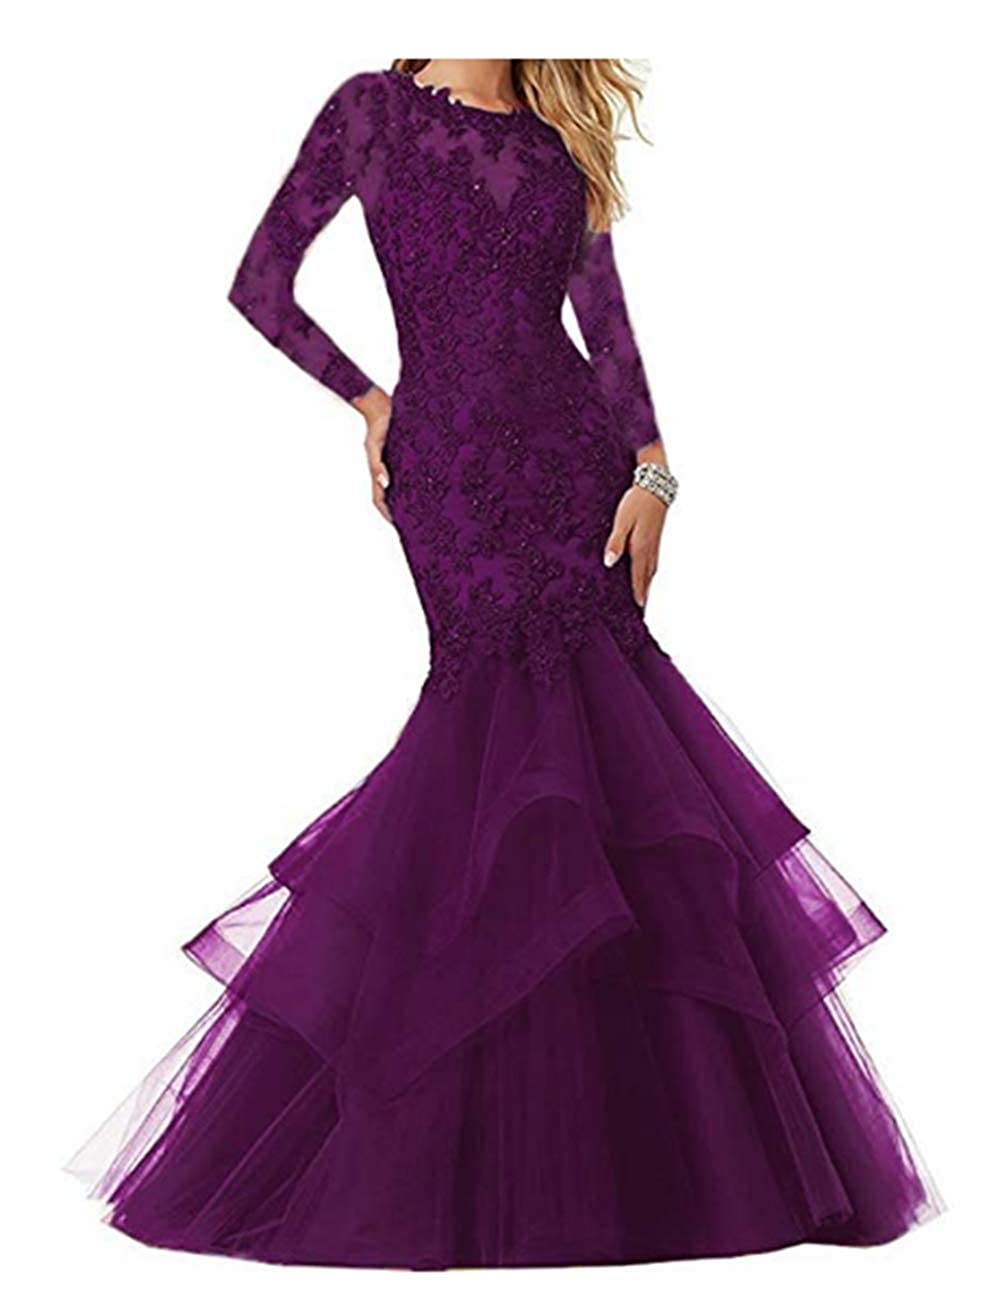 Grape FWVR Women's Mermaid Appliques Prom Dresses Long Sleeves Evening Wedding Party Gowns